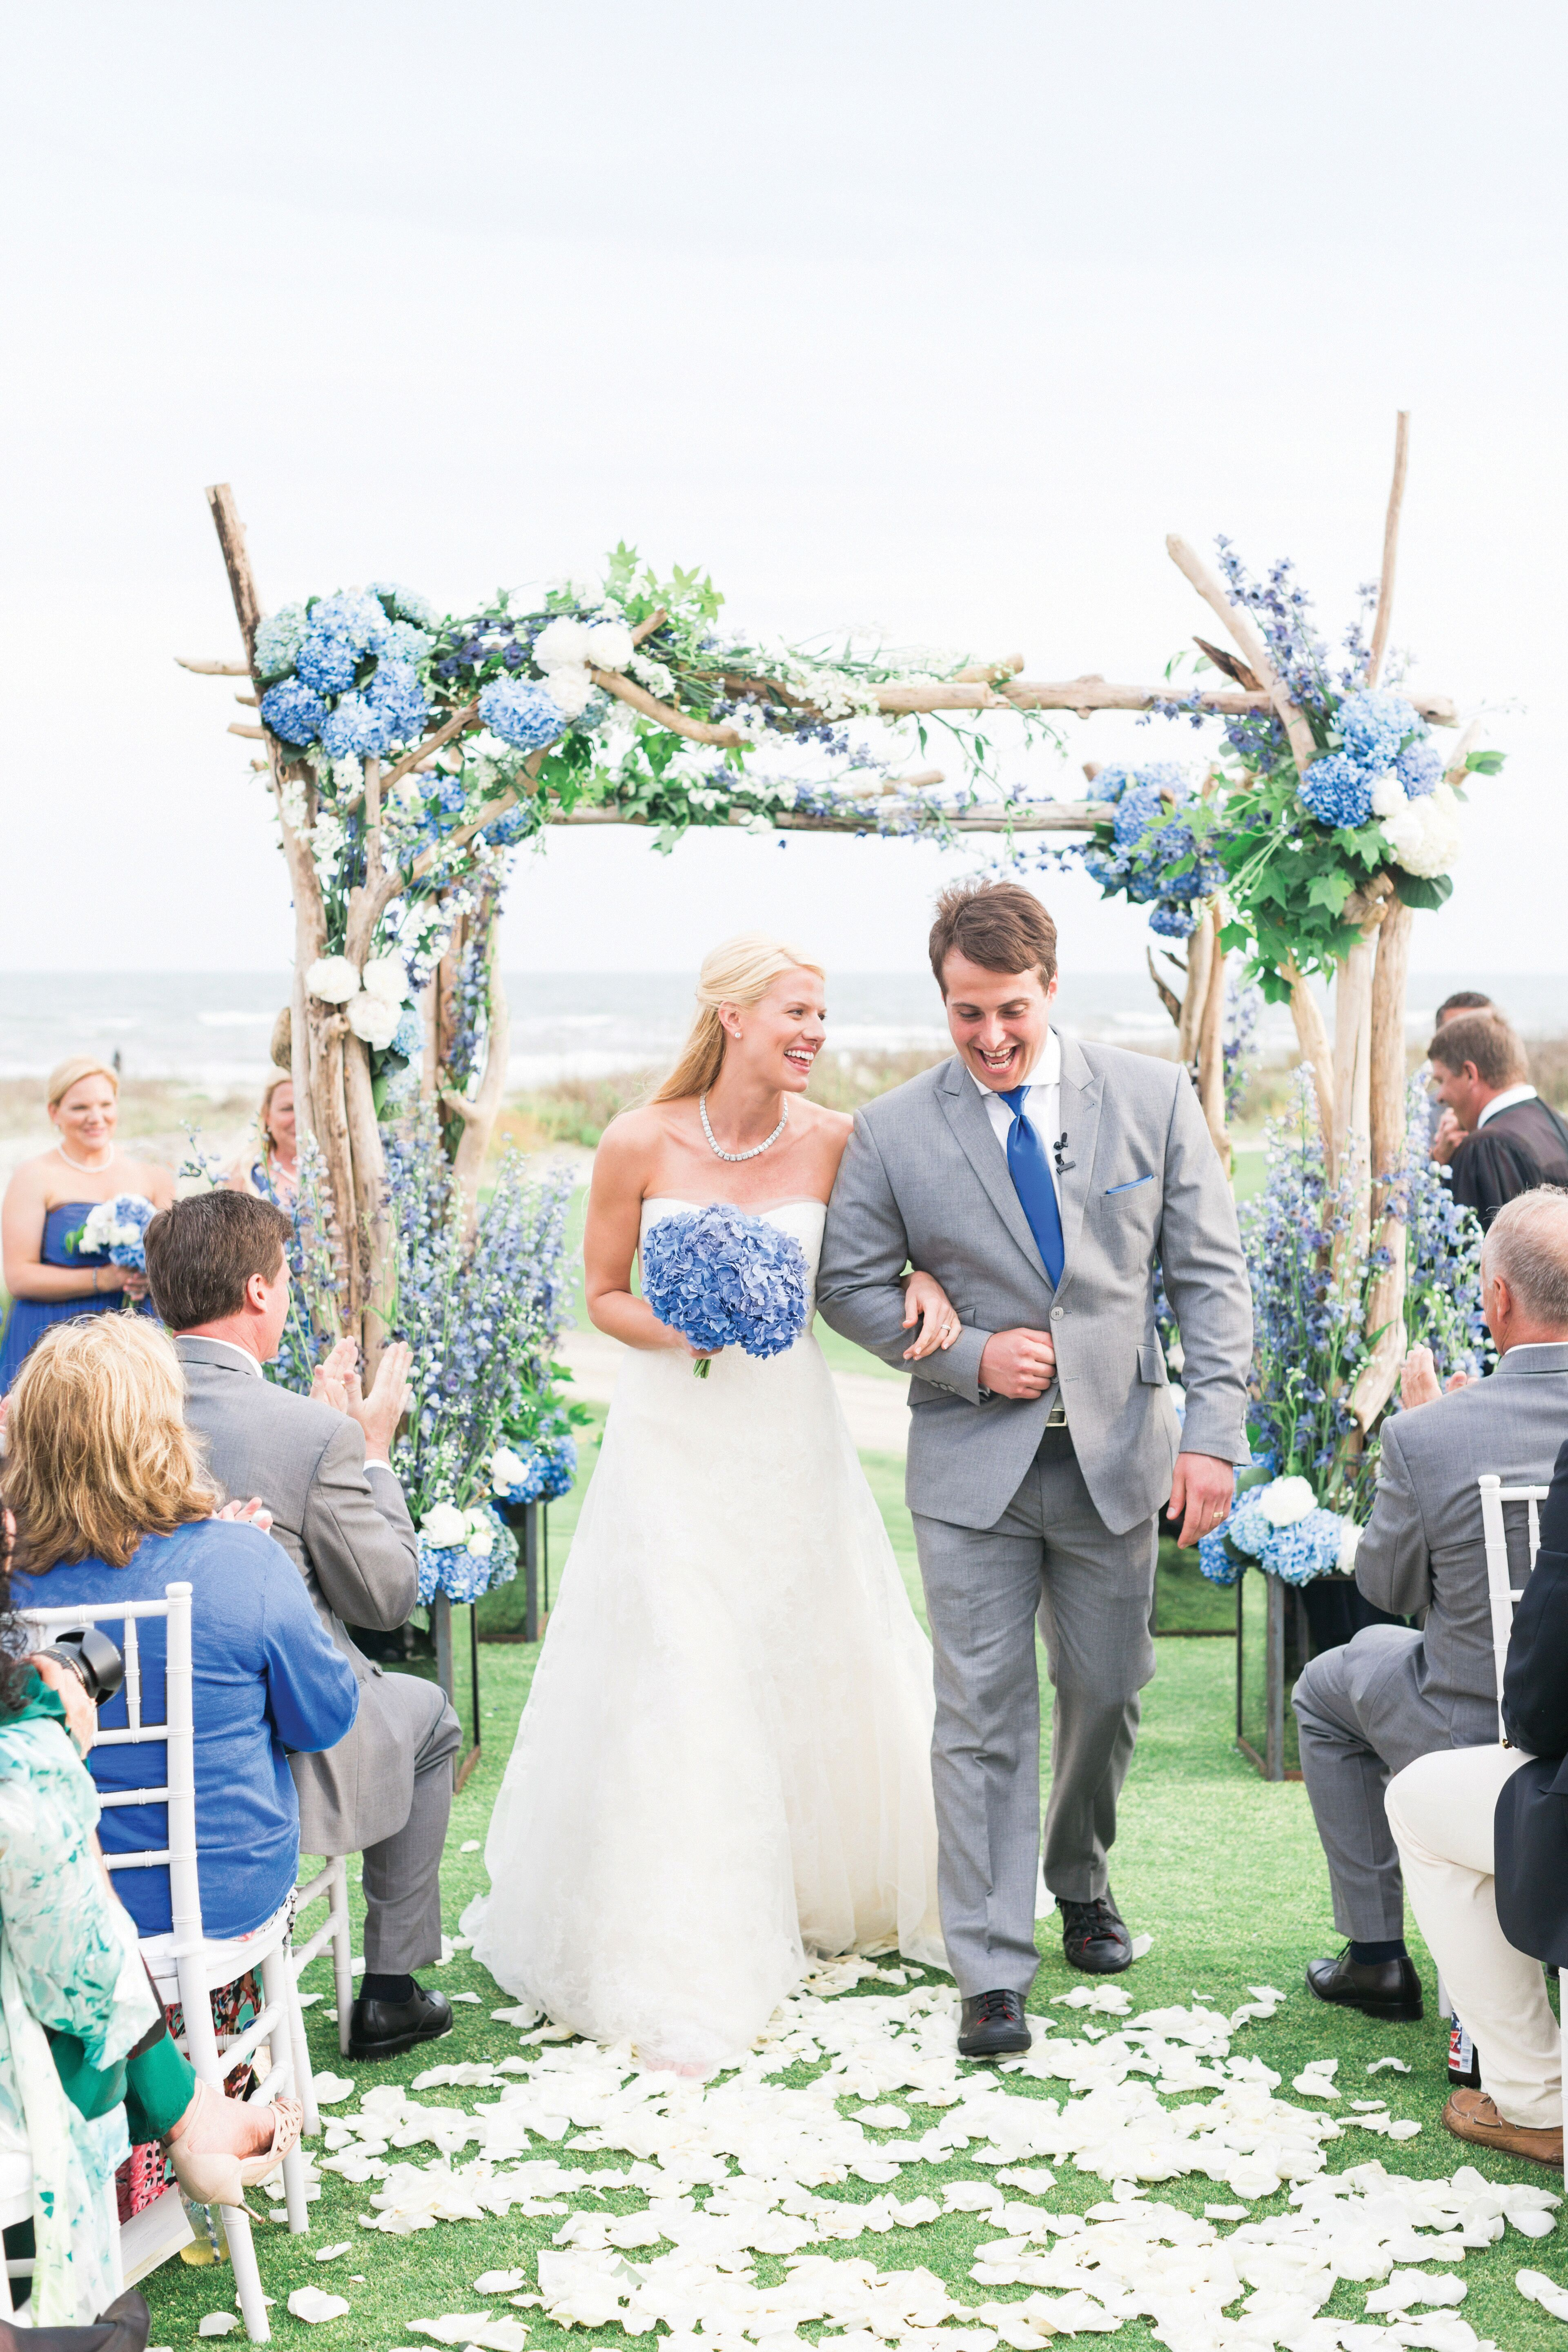 Get The Look Of This Beautiful Periwinkle Indigo Blue And Gray Beach Wedding